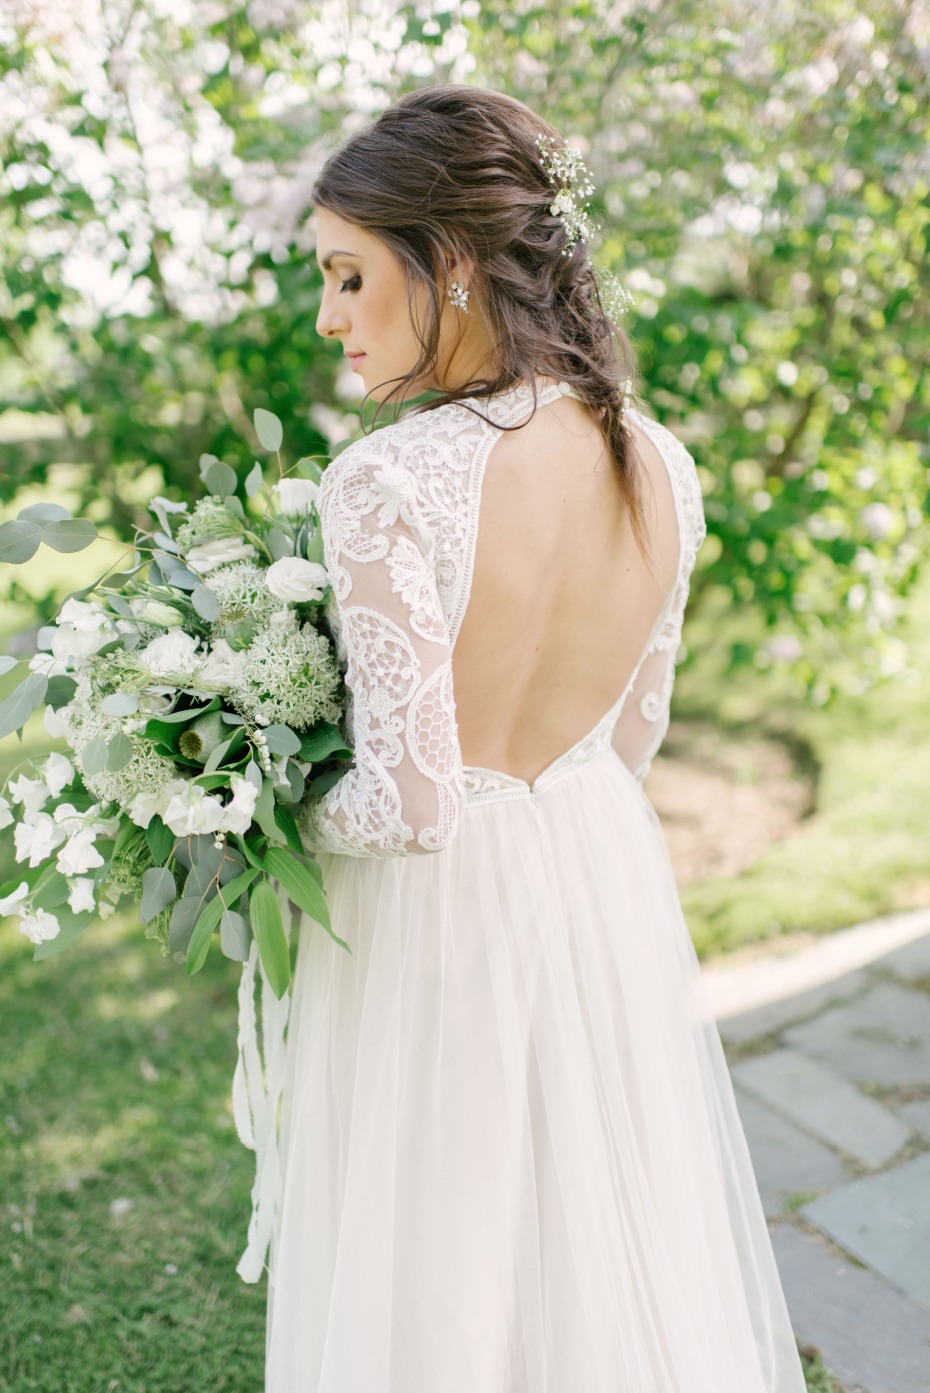 6 ways to give your wedding a vintage vibe for Pawn shops that buy wedding dresses